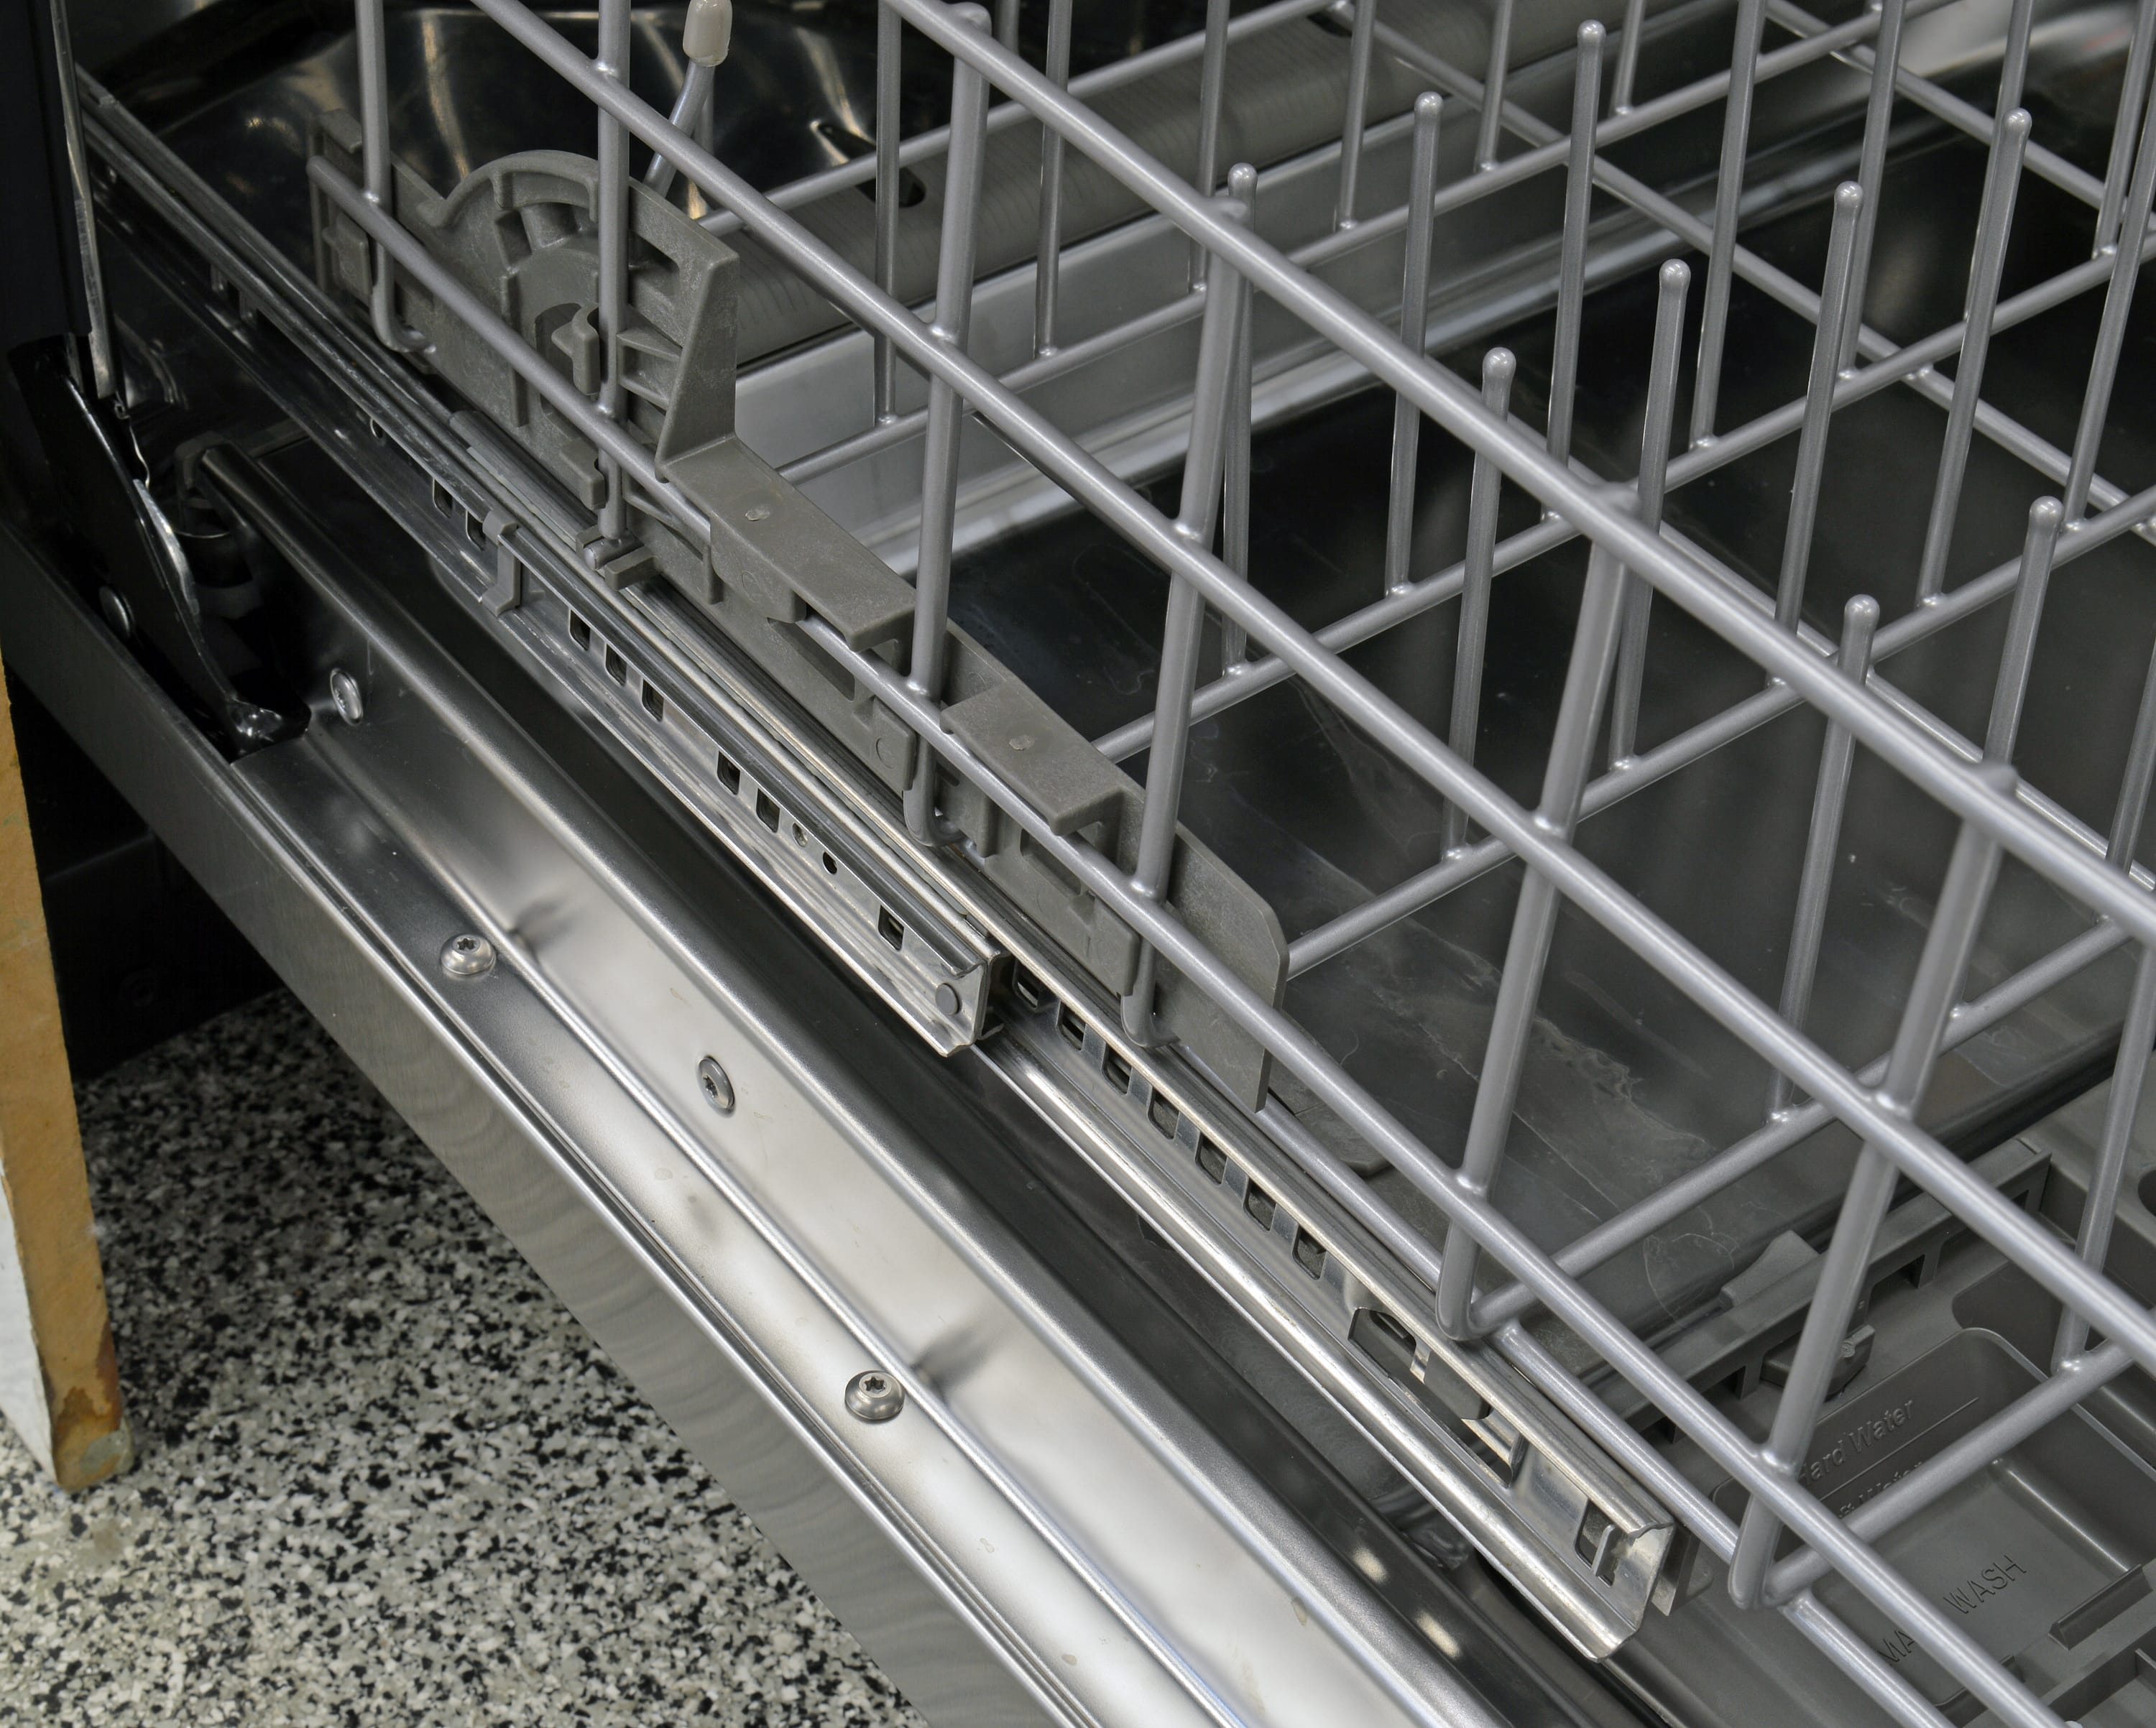 KitchenAid KDTE404DSS bottom rack rails